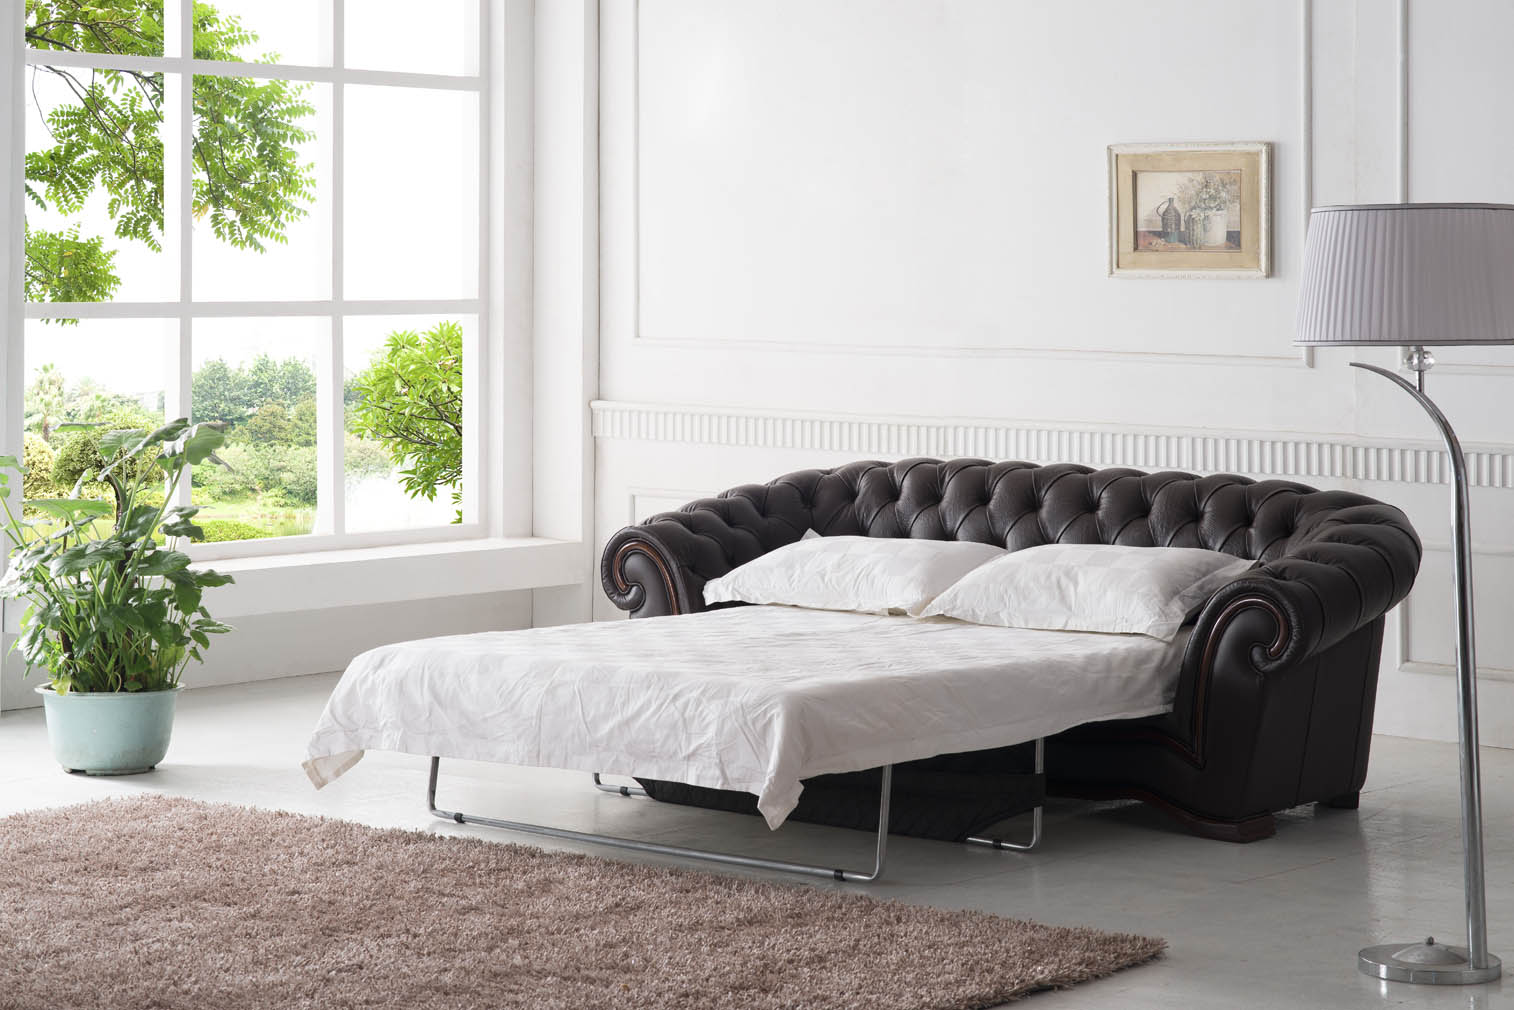 262 Full Leather, Sofas Loveseats and Chairs, Living Room Furniture